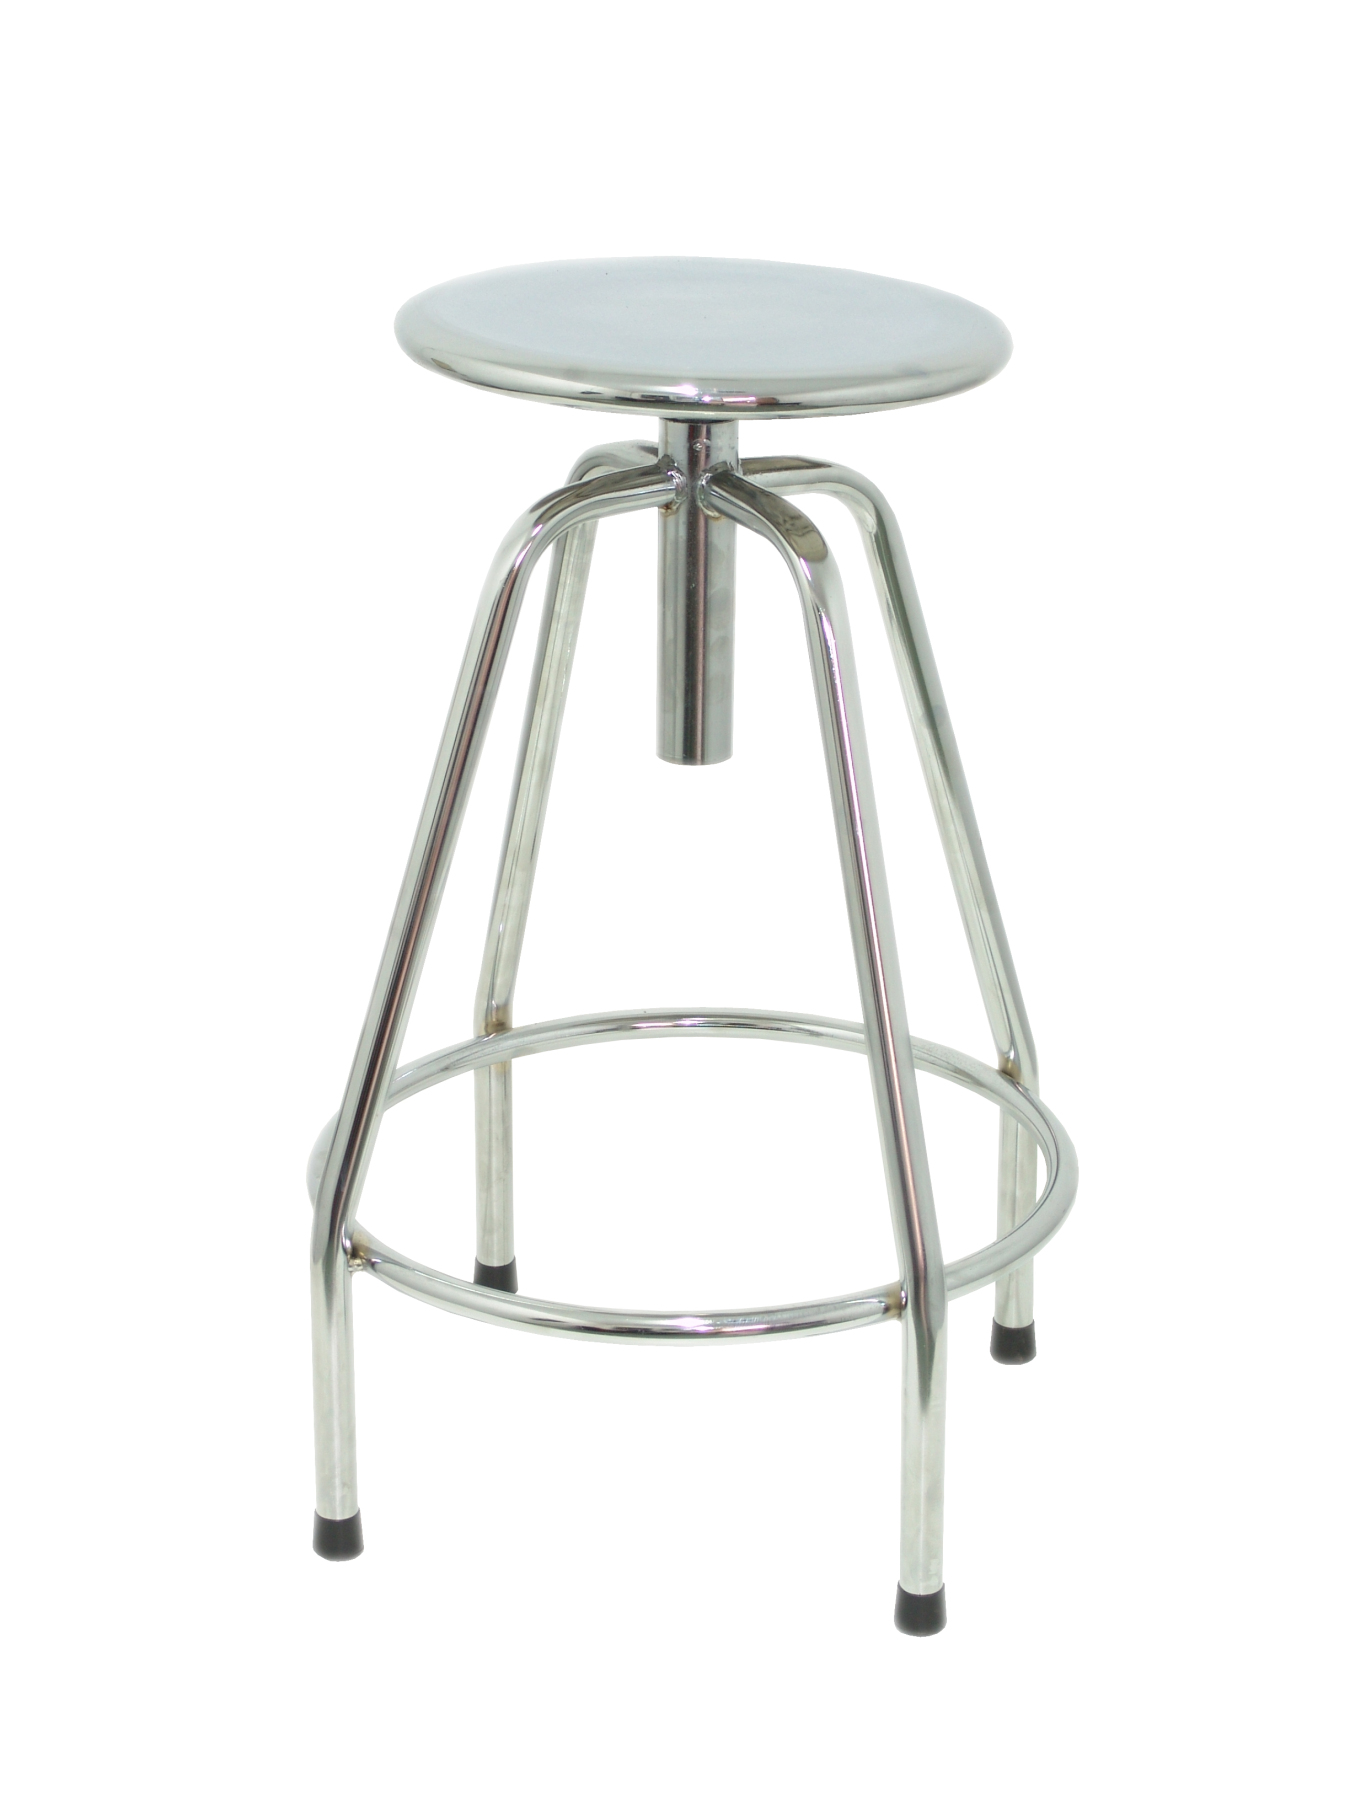 Stool's Multipurpose And Detachable Swivel 4 Topsy Underwire Foot Pegs Chrome-up Seat From Steel TAPHOLE AND CURLED M